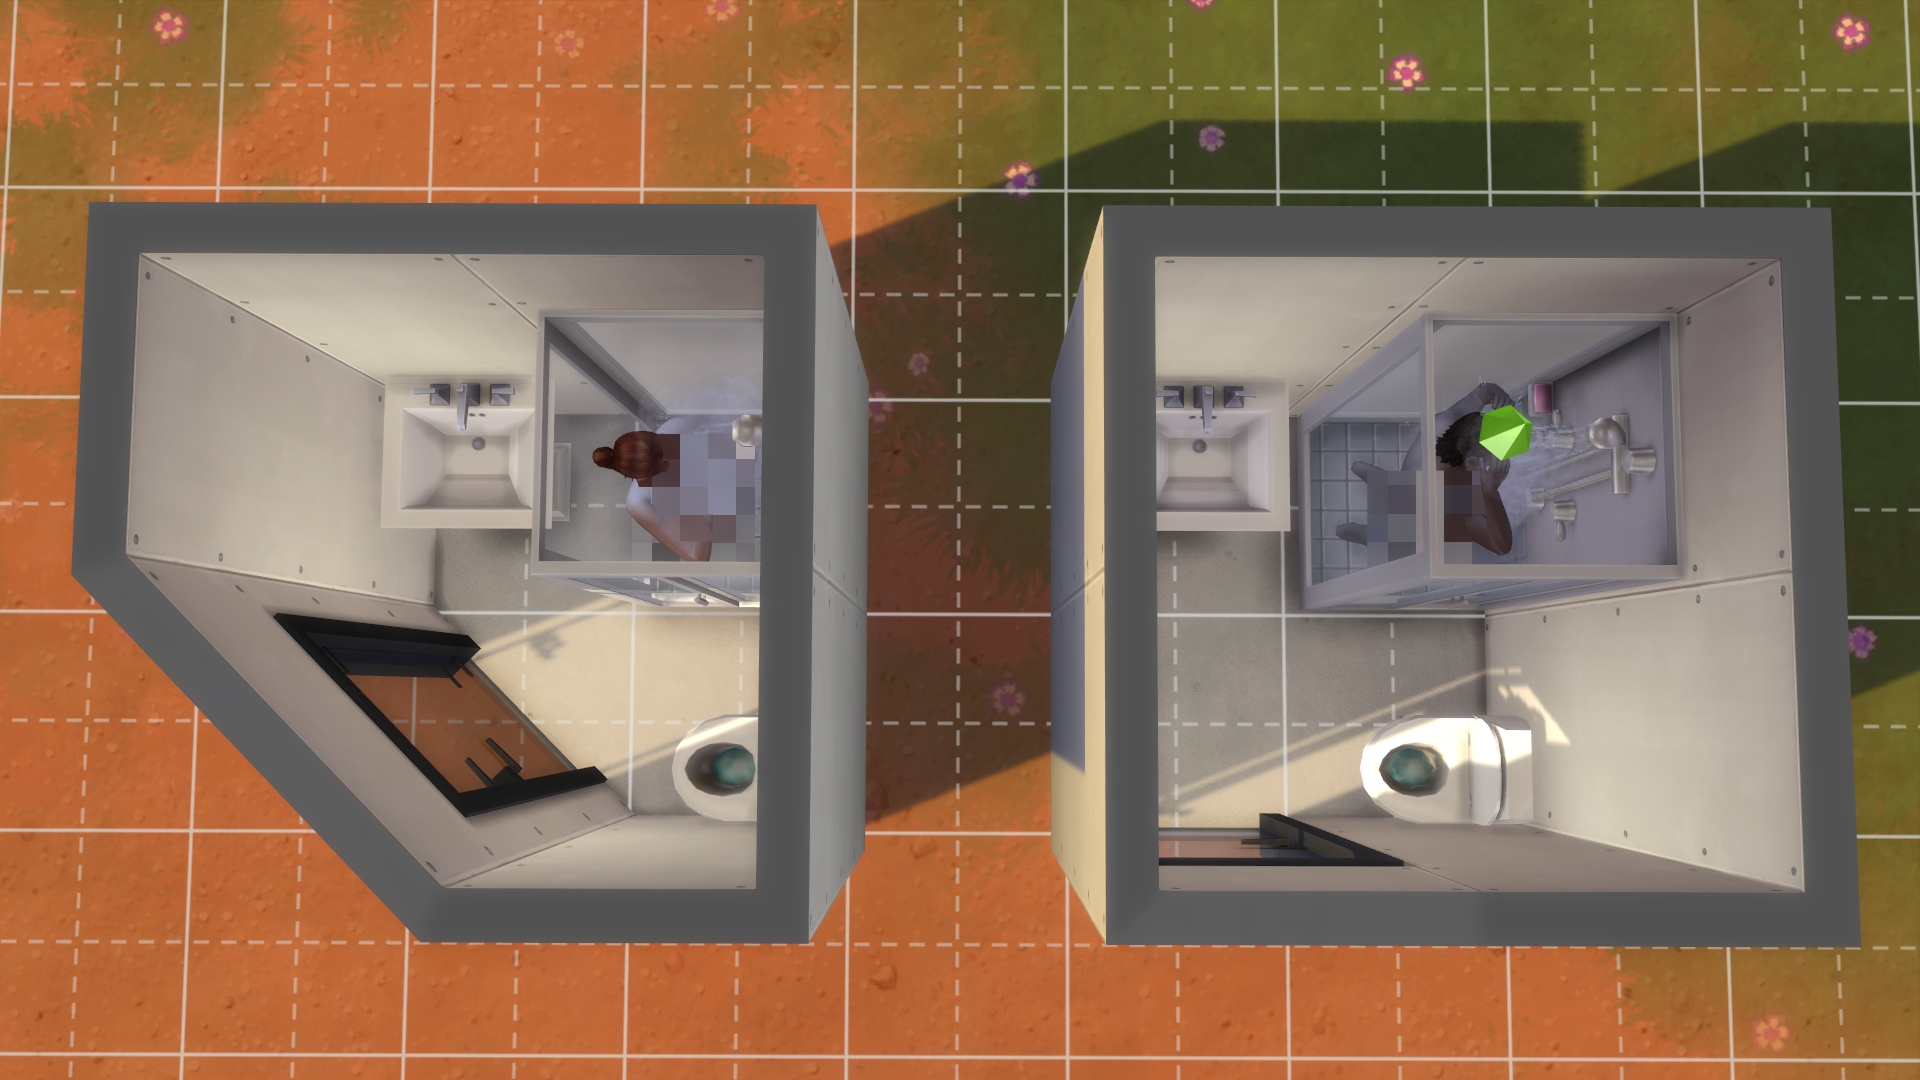 Small Bathrooms? : Thesims 2X2 Bathroom Design